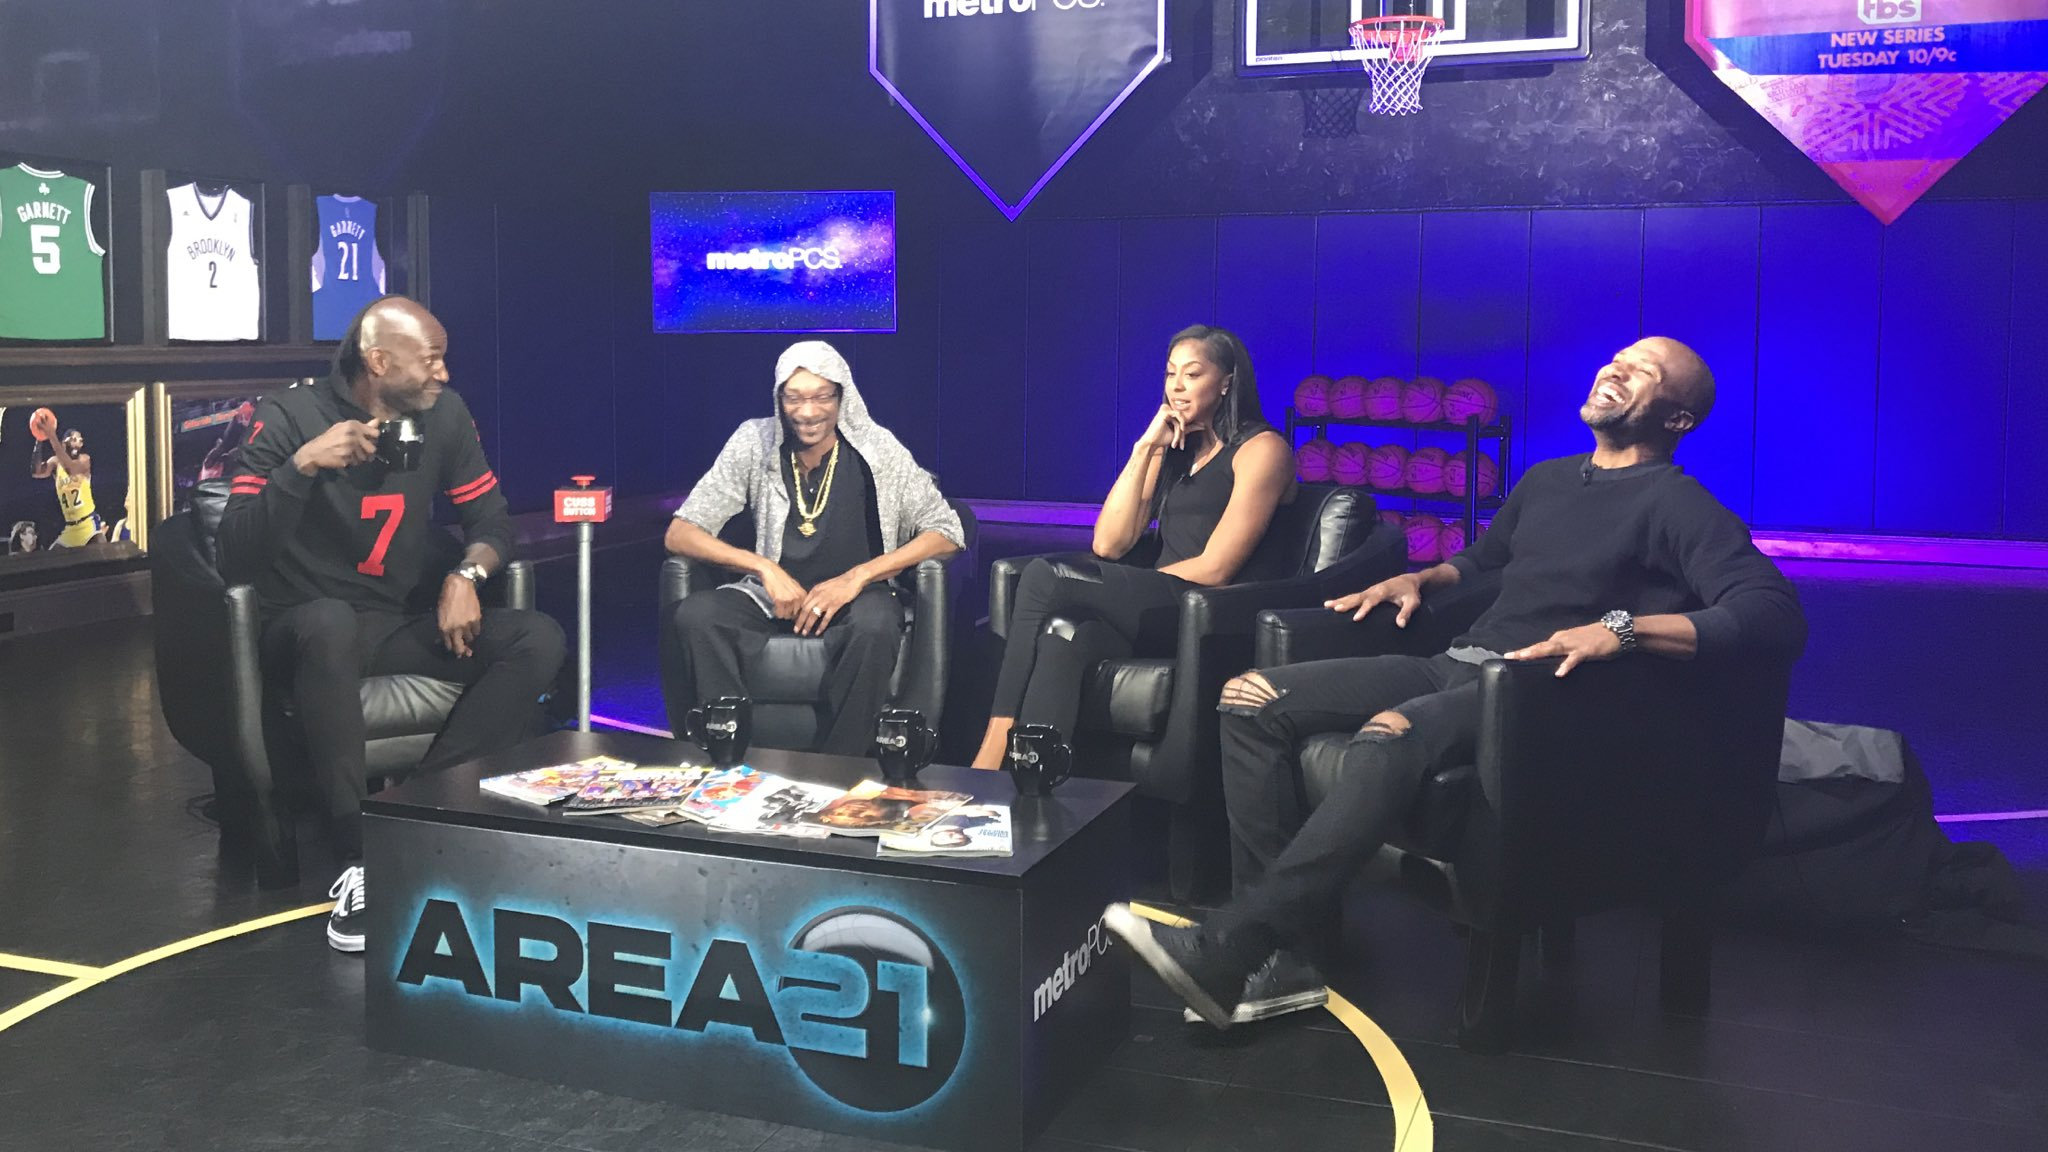 RT @KGArea21: You know what it is! 🔥  KG, @SnoopDogg, @Candace_Parker & @derekfisher kicking it on #KGArea21. https://t.co/uuPaVLeWRG